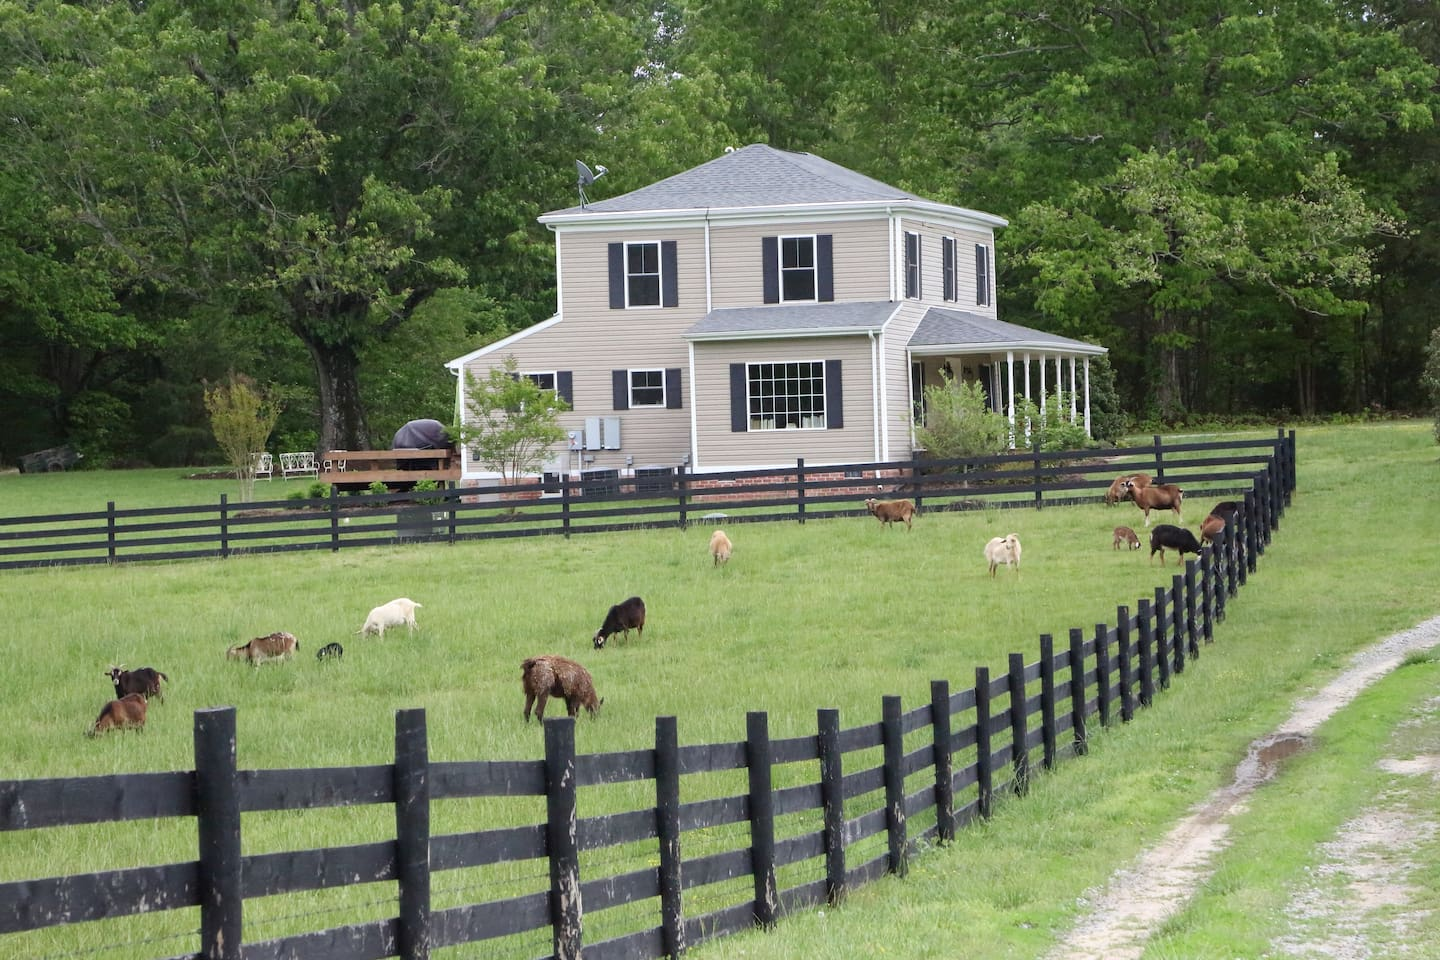 Goats are often in the pasture next to Airbnb house to entertain guests.